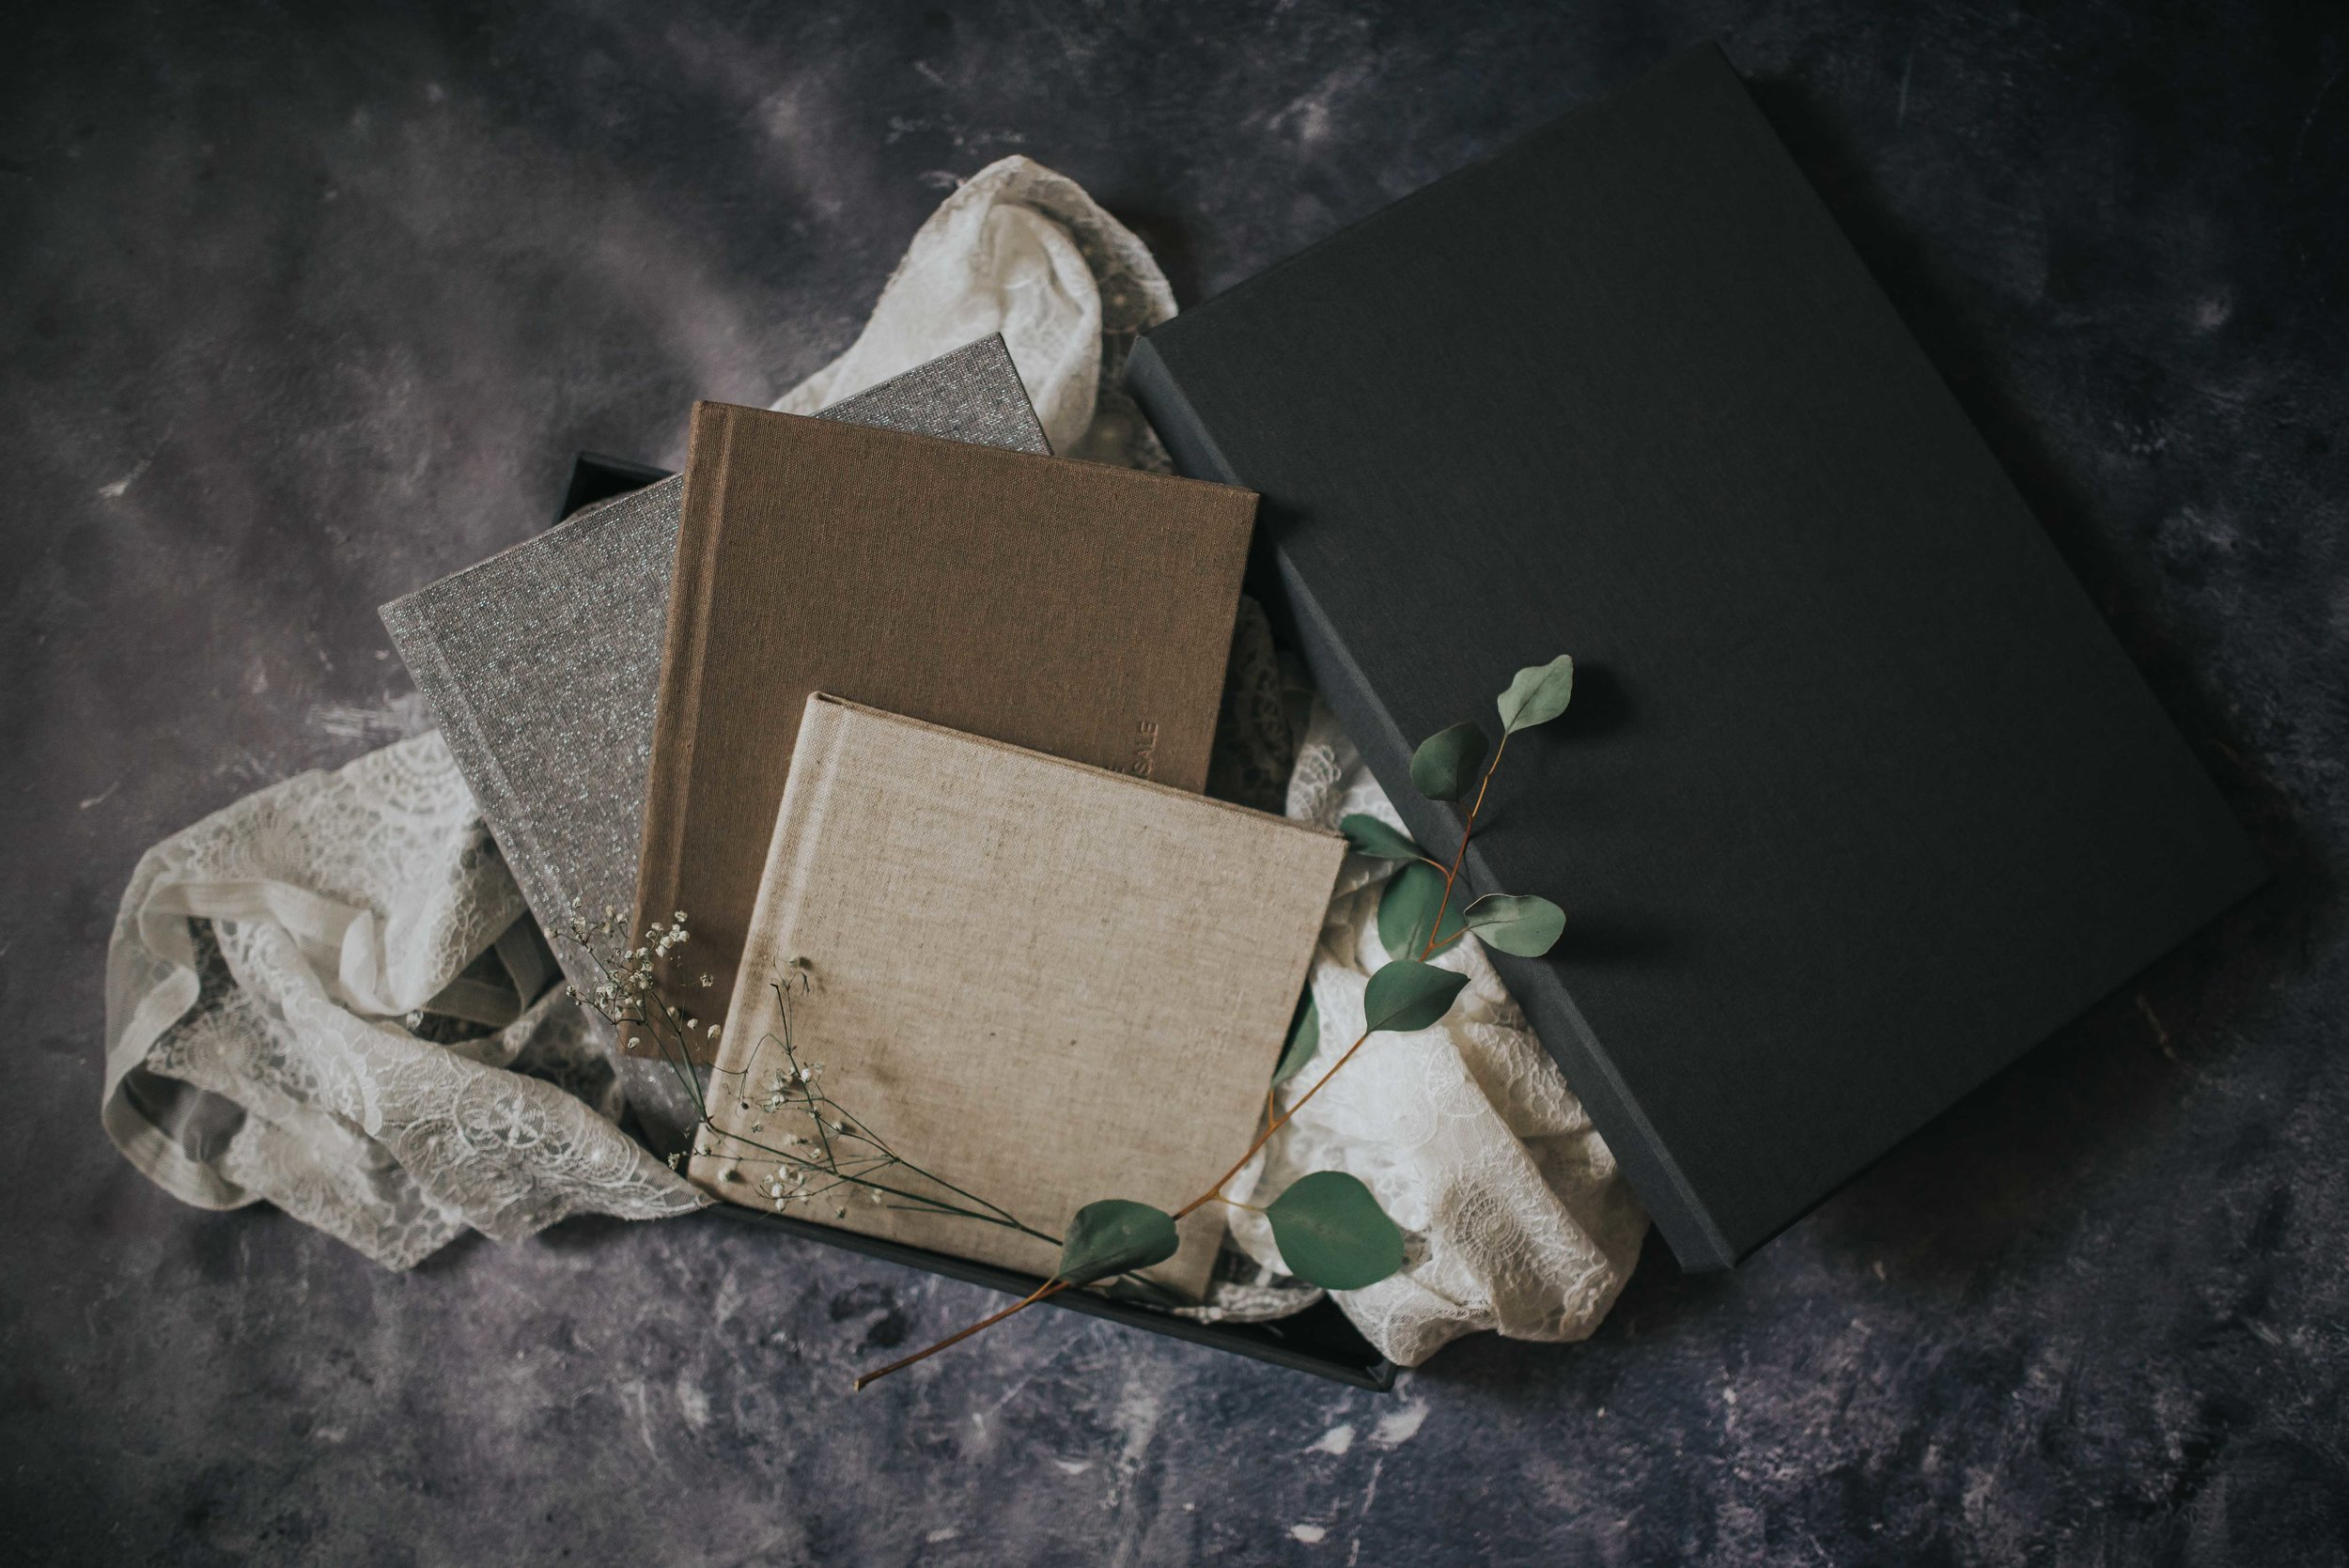 Signature Books - Bonded Leather or Linen Covers with DebossingMatte or Pearl Paper